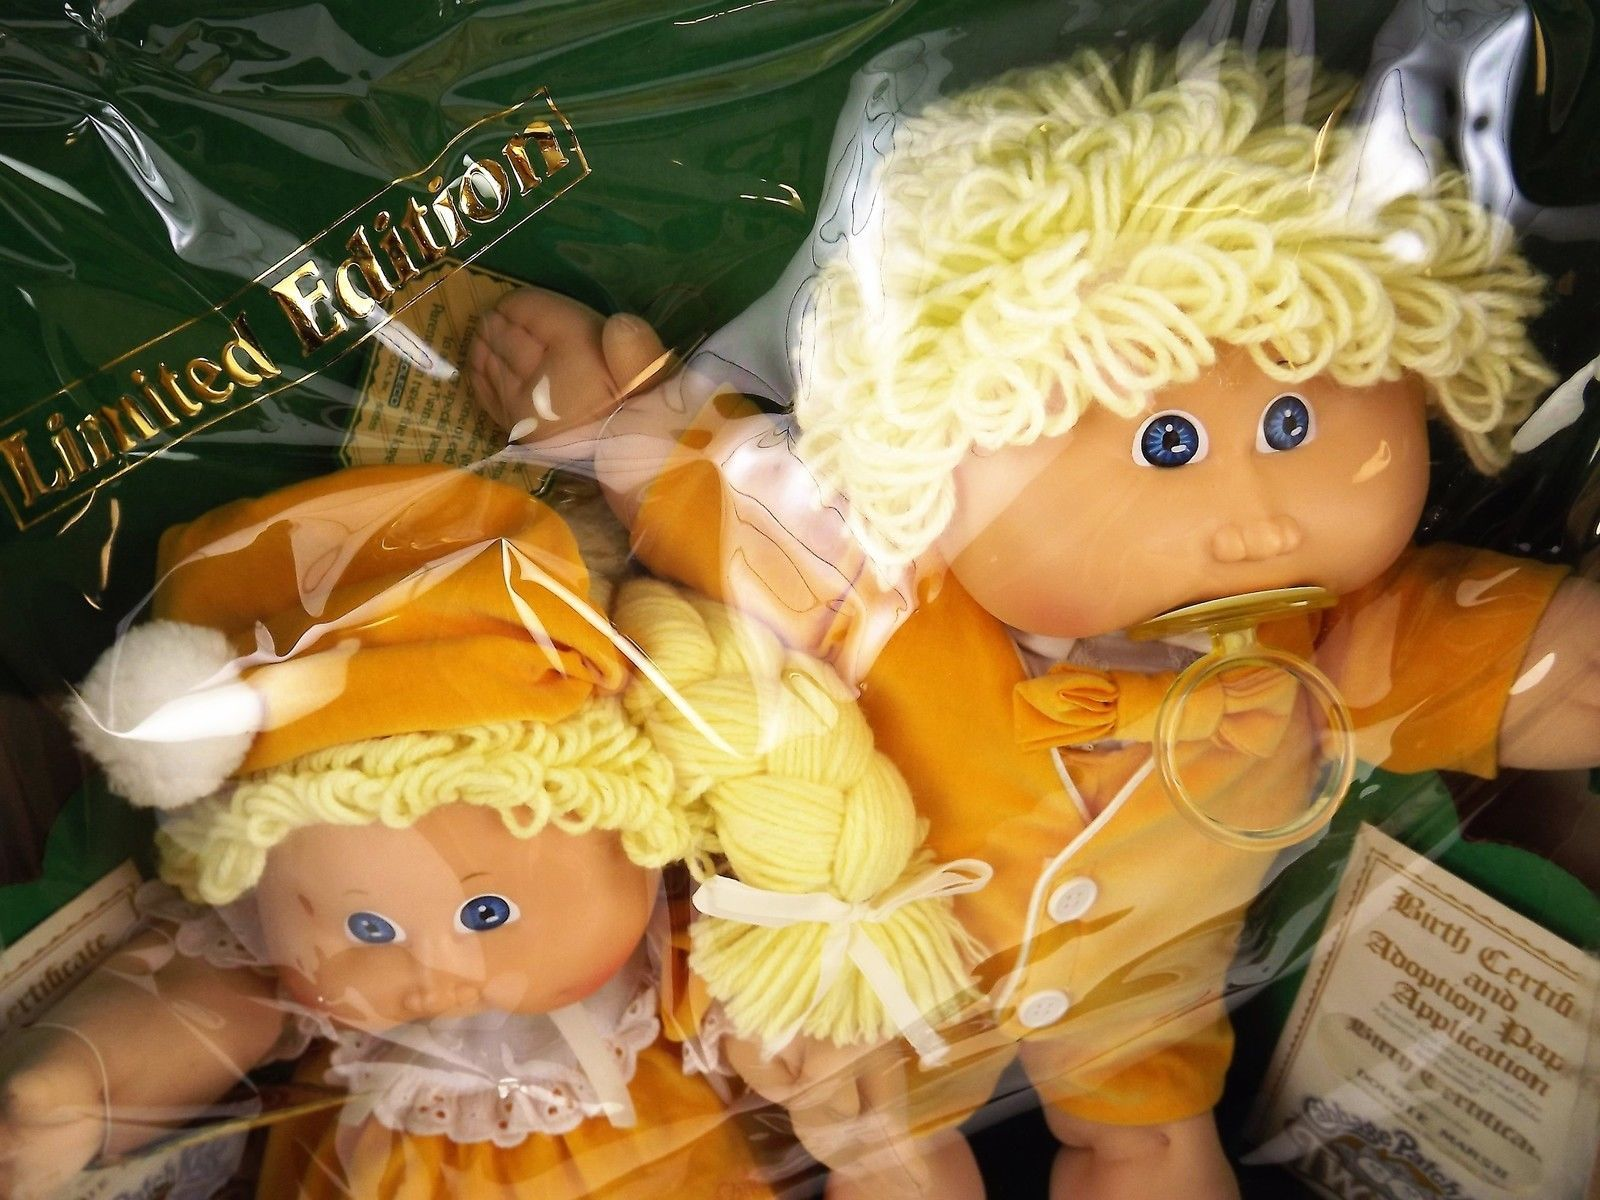 Vintage Limited Edition 1985 Cabbage Patch Boy Girl Twin Dolls In Original Box Twin Dolls Cabbage Patch Dolls Boy Girl Twins